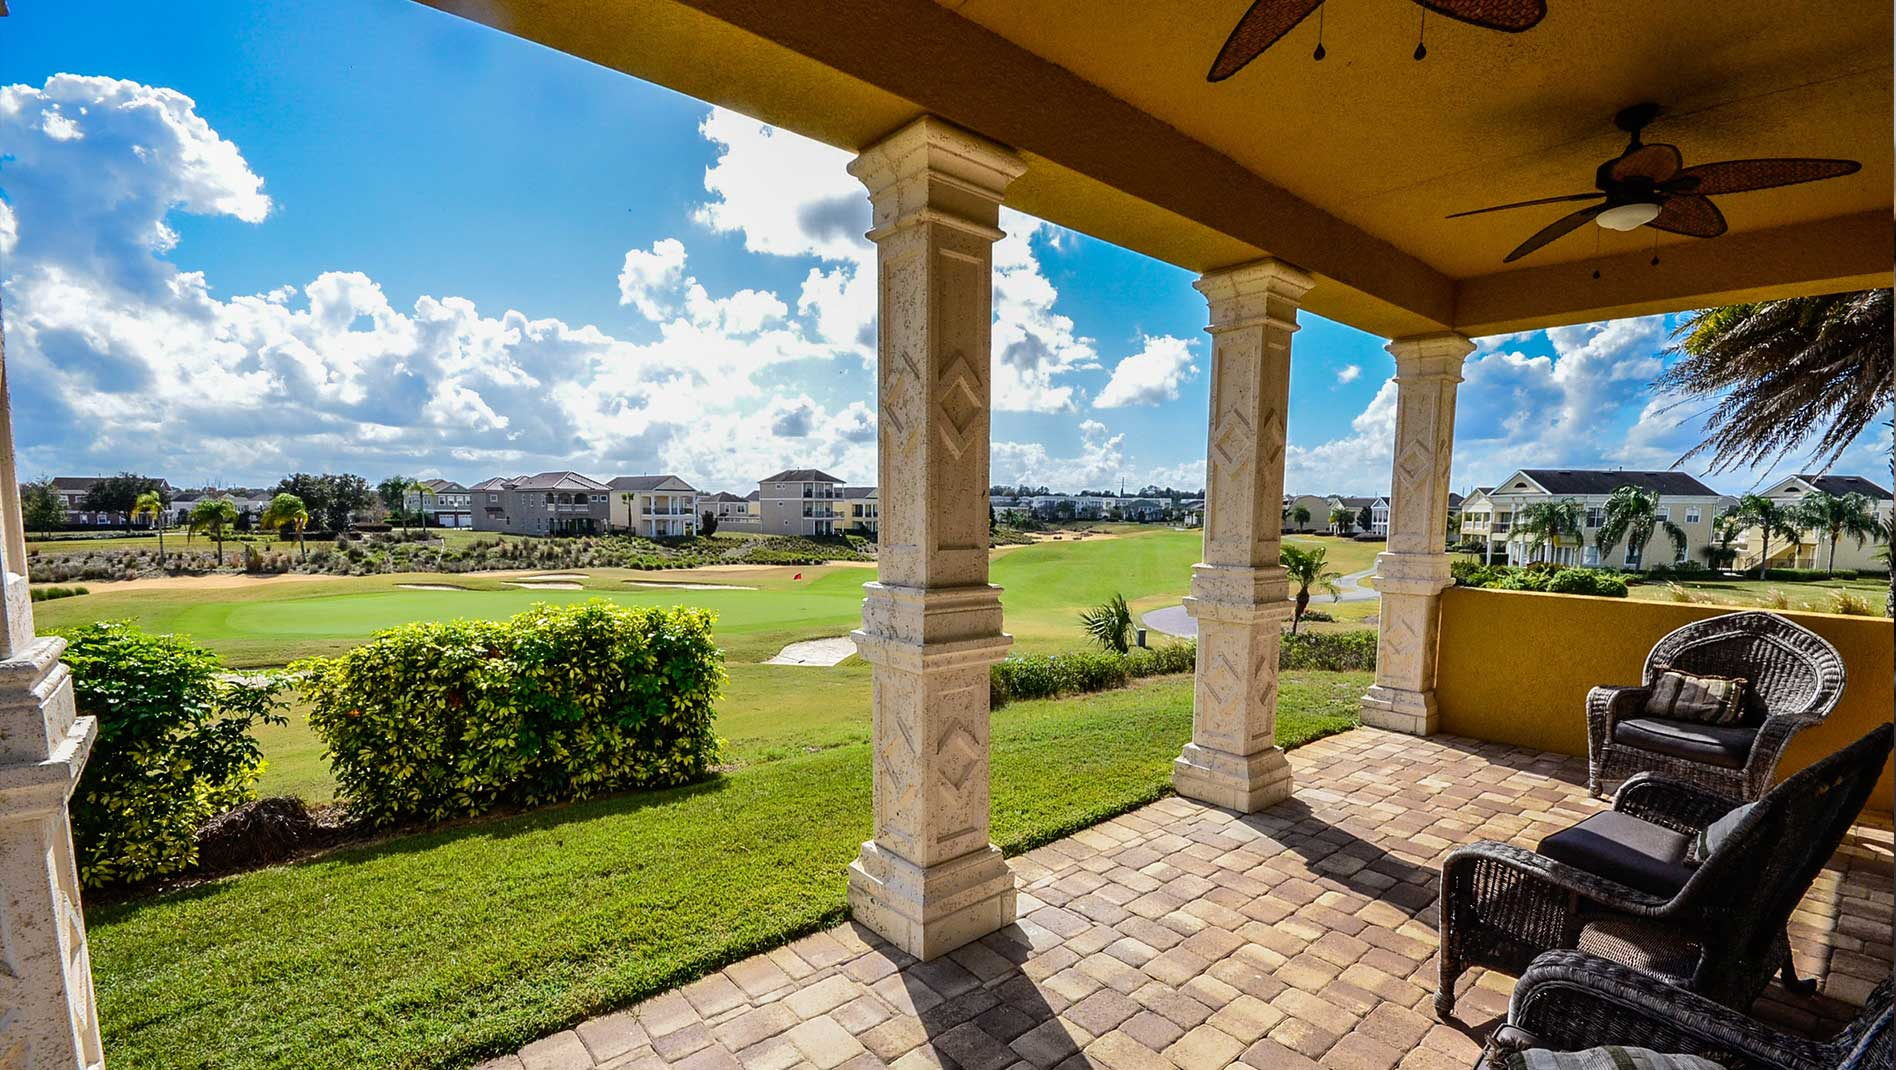 Admirable Luxury Vacation Rentals Orlando Five Star Villas Home Interior And Landscaping Dextoversignezvosmurscom